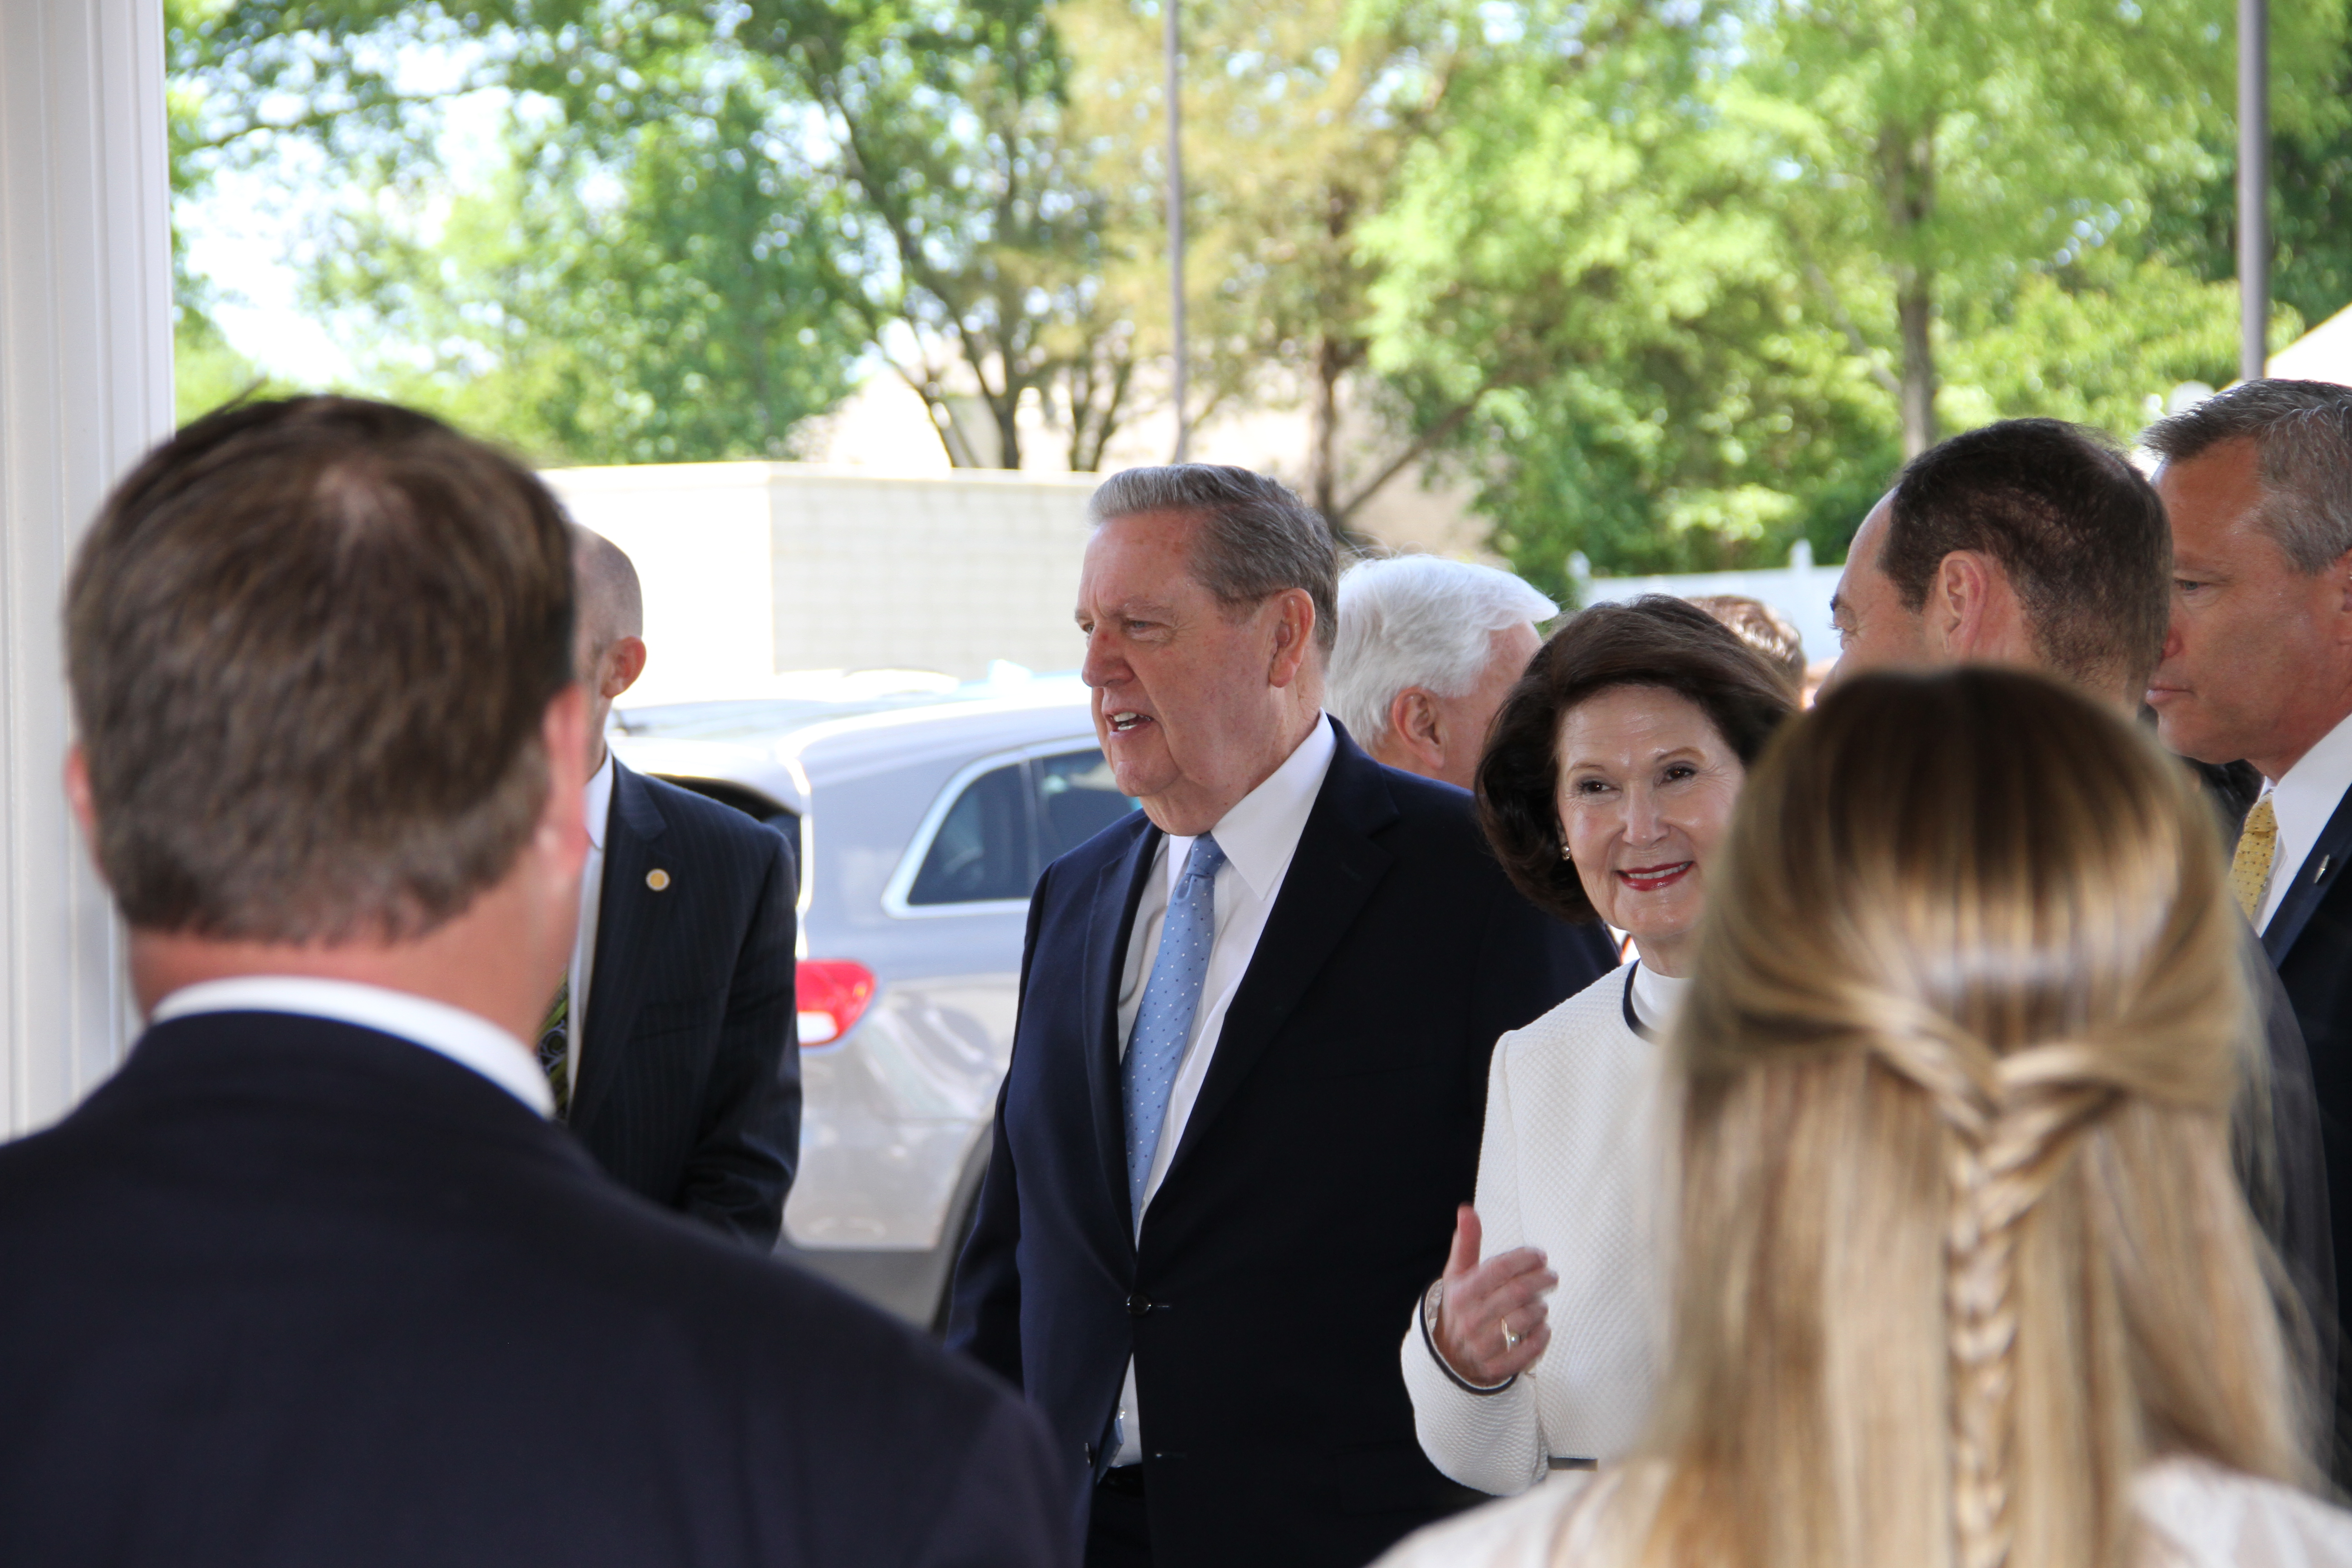 Elder Jeffrey R. Holland and Sister Patricia Holland greet members as they leave the Memphis Tennessee Temple following the rededication ceremony on May 5, 2019.